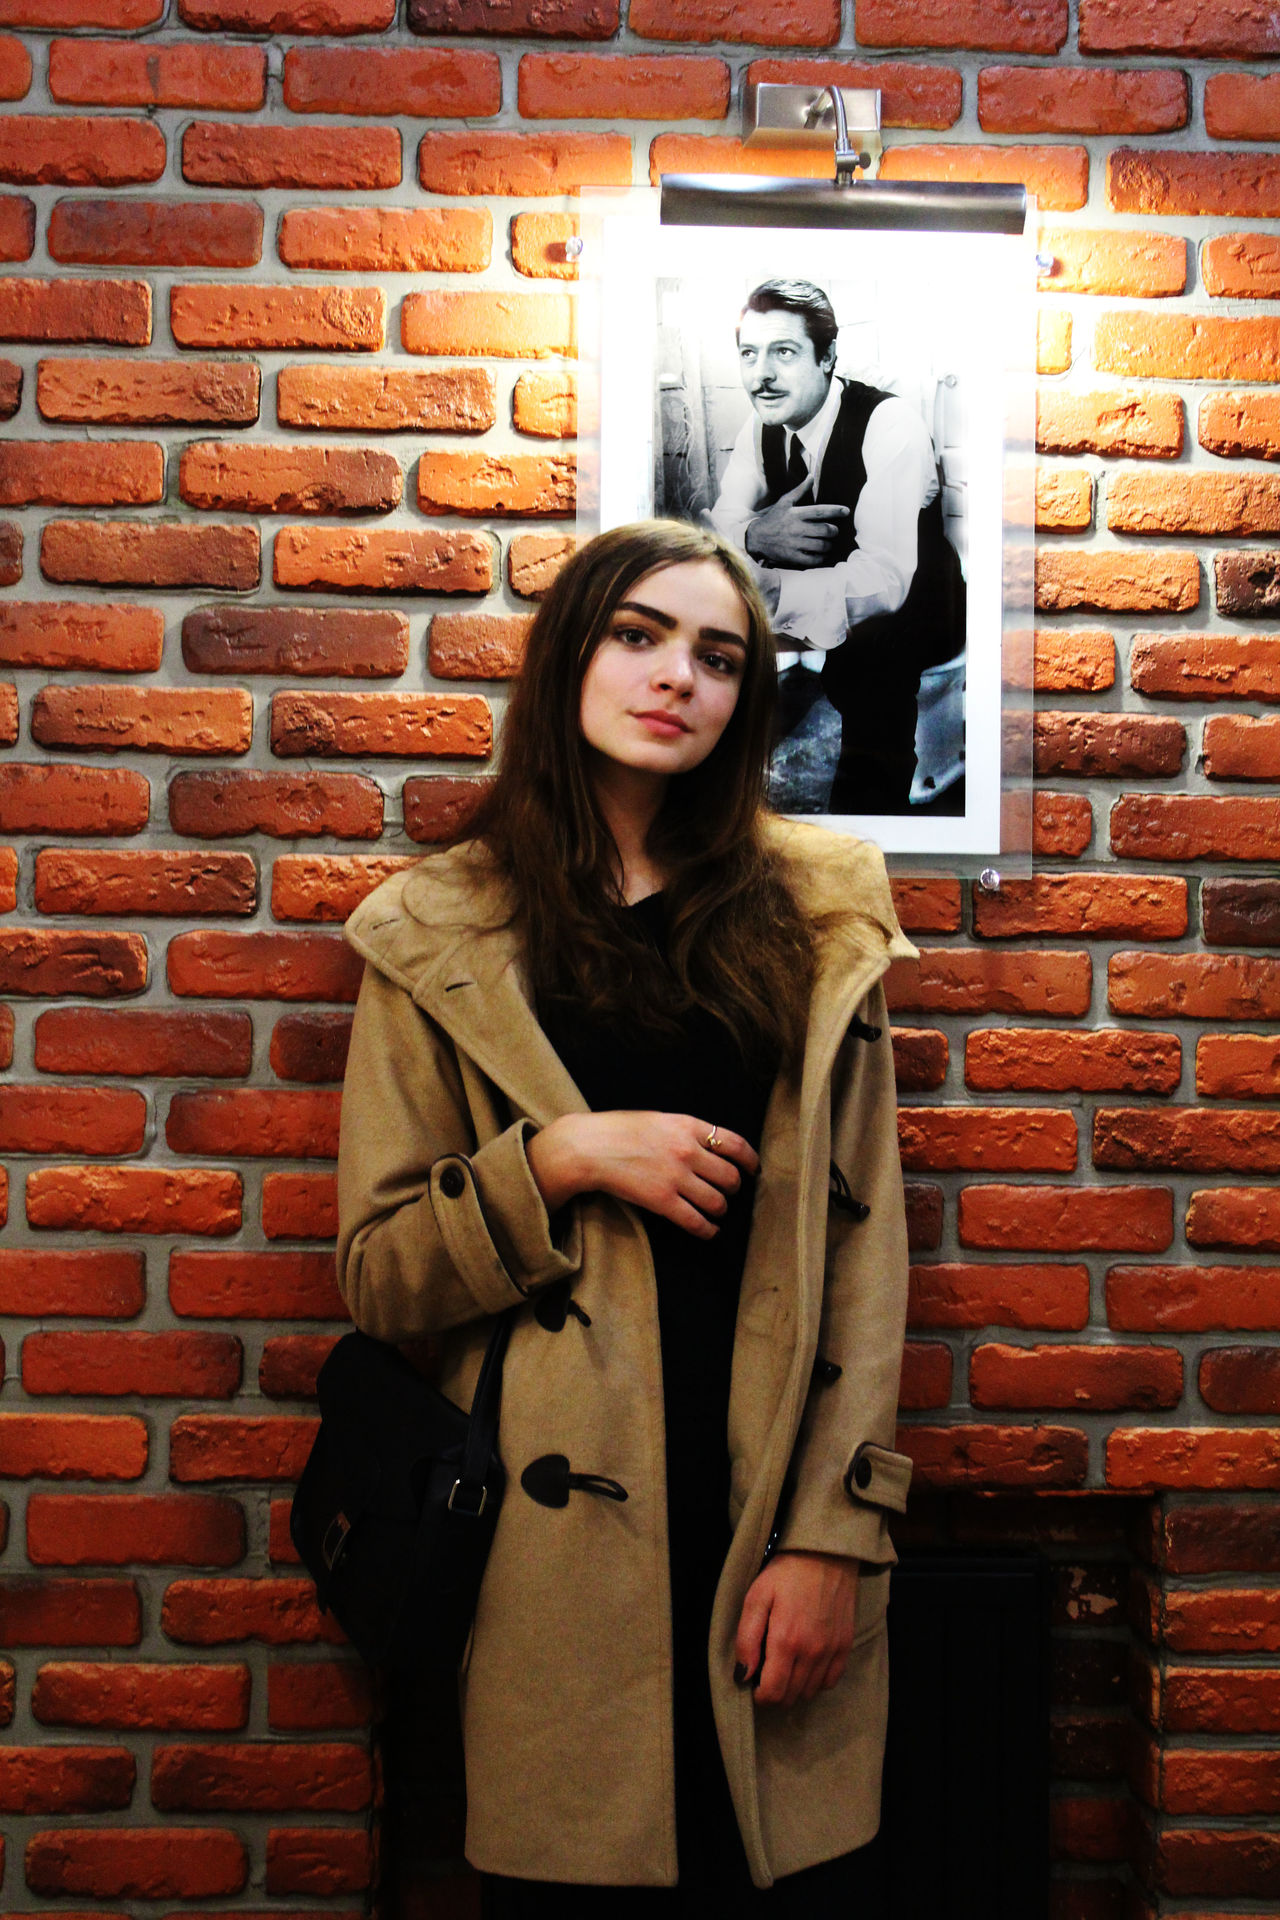 Adult Adults Only Beautiful Woman Brick Wall Day Holding Indoors  Long Hair Looking At Camera One Person One Woman Only One Young Woman Only Only Women People Portrait Standing Well-dressed Women Young Adult